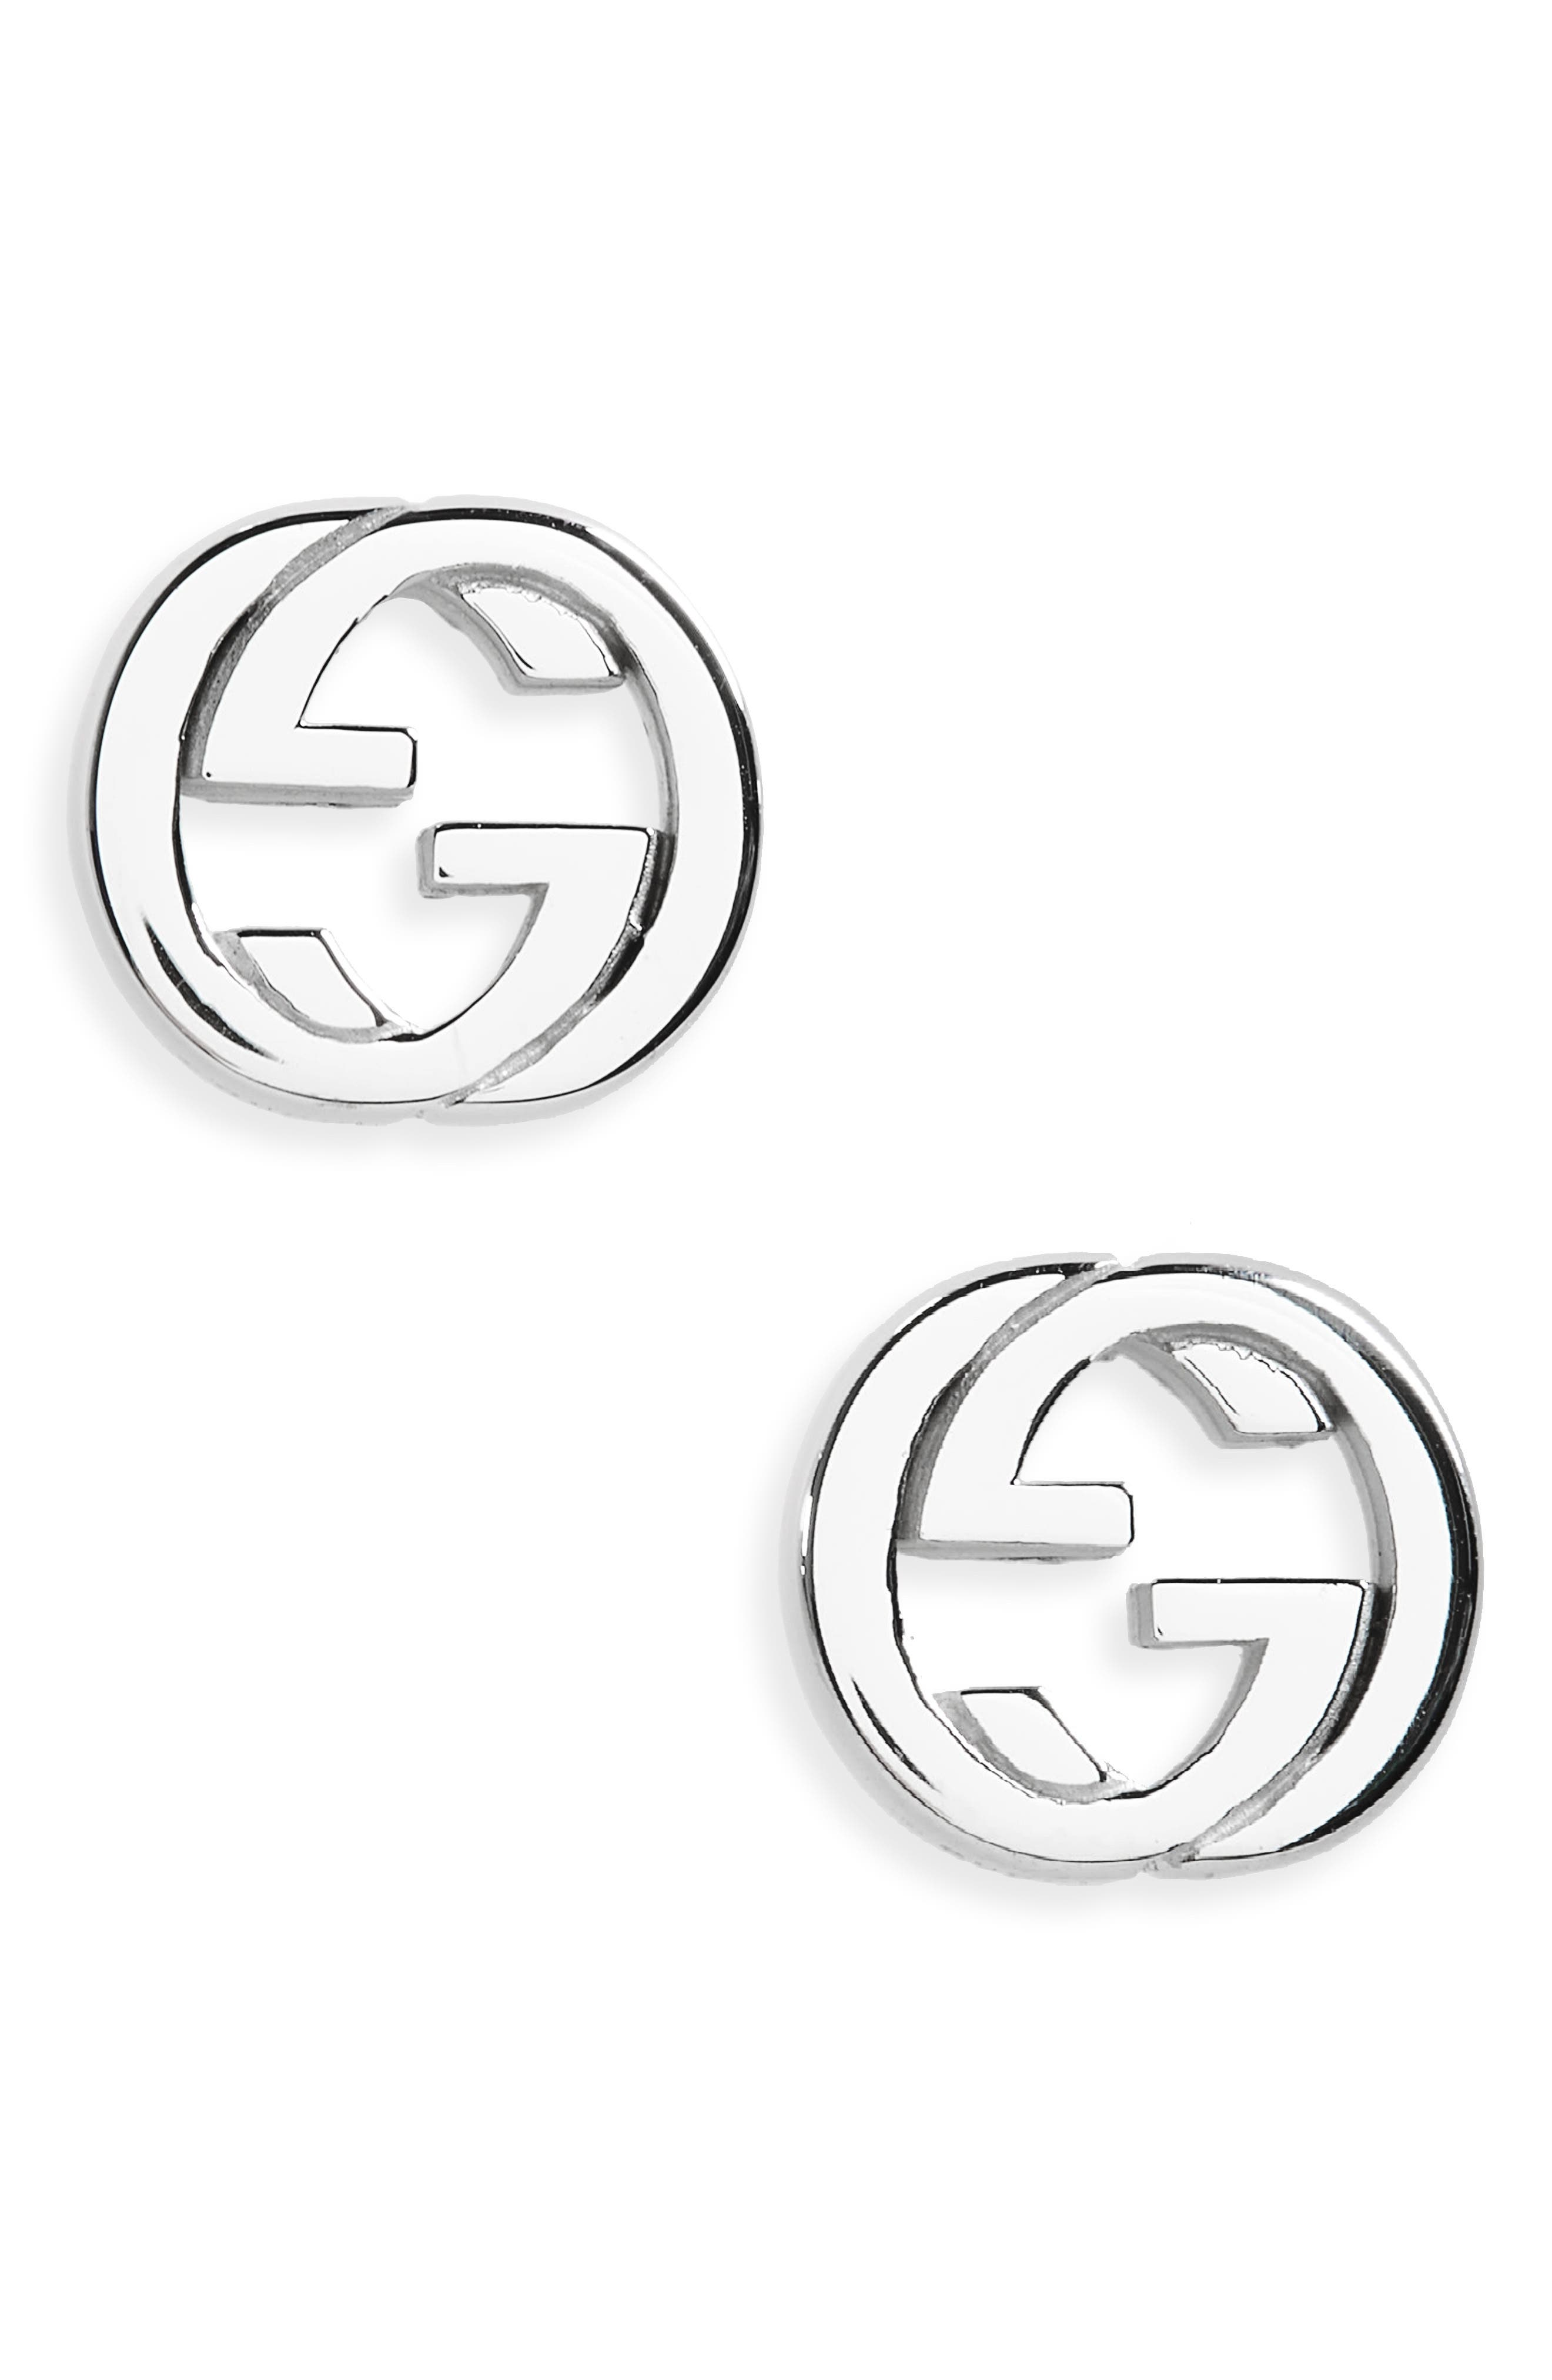 Interlocking Stud Earrings,                             Main thumbnail 1, color,                             040